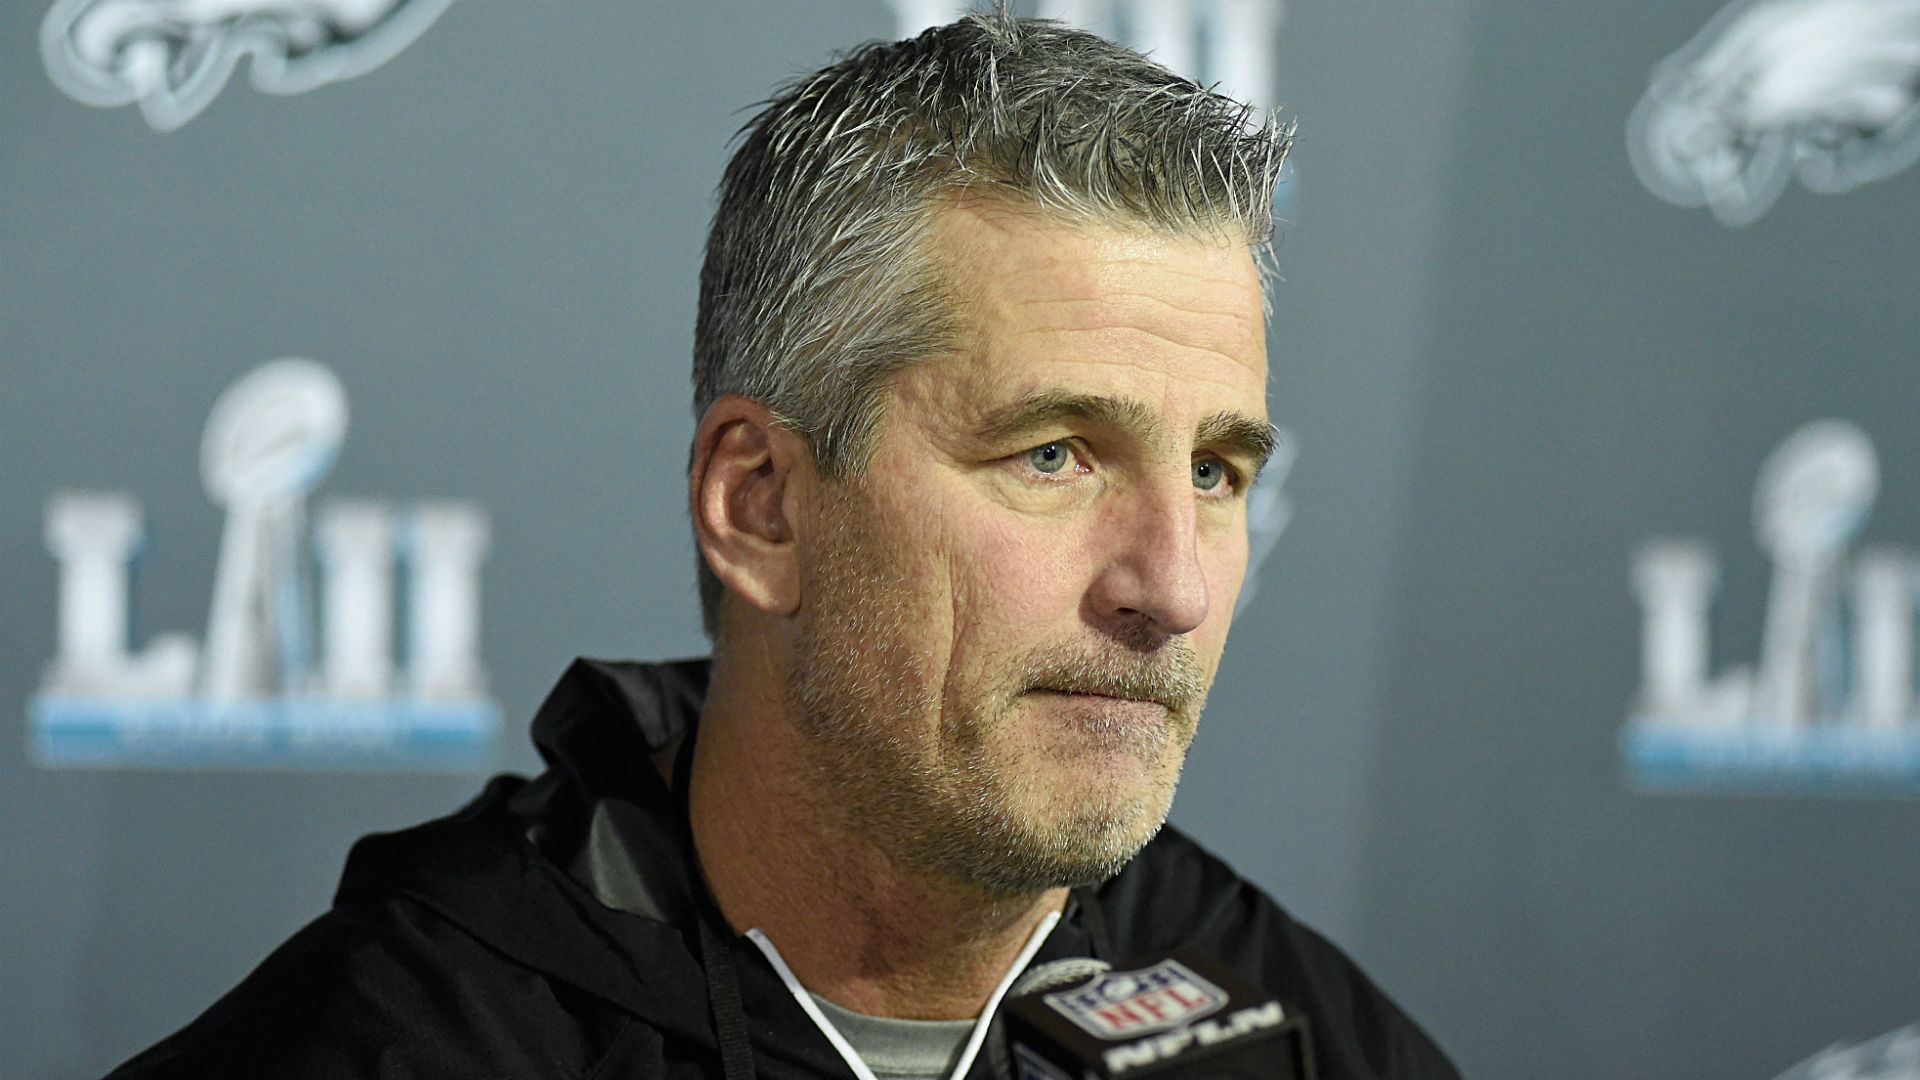 Eagles' offensive coordinator Frank Reich will be the Colts' new head coach